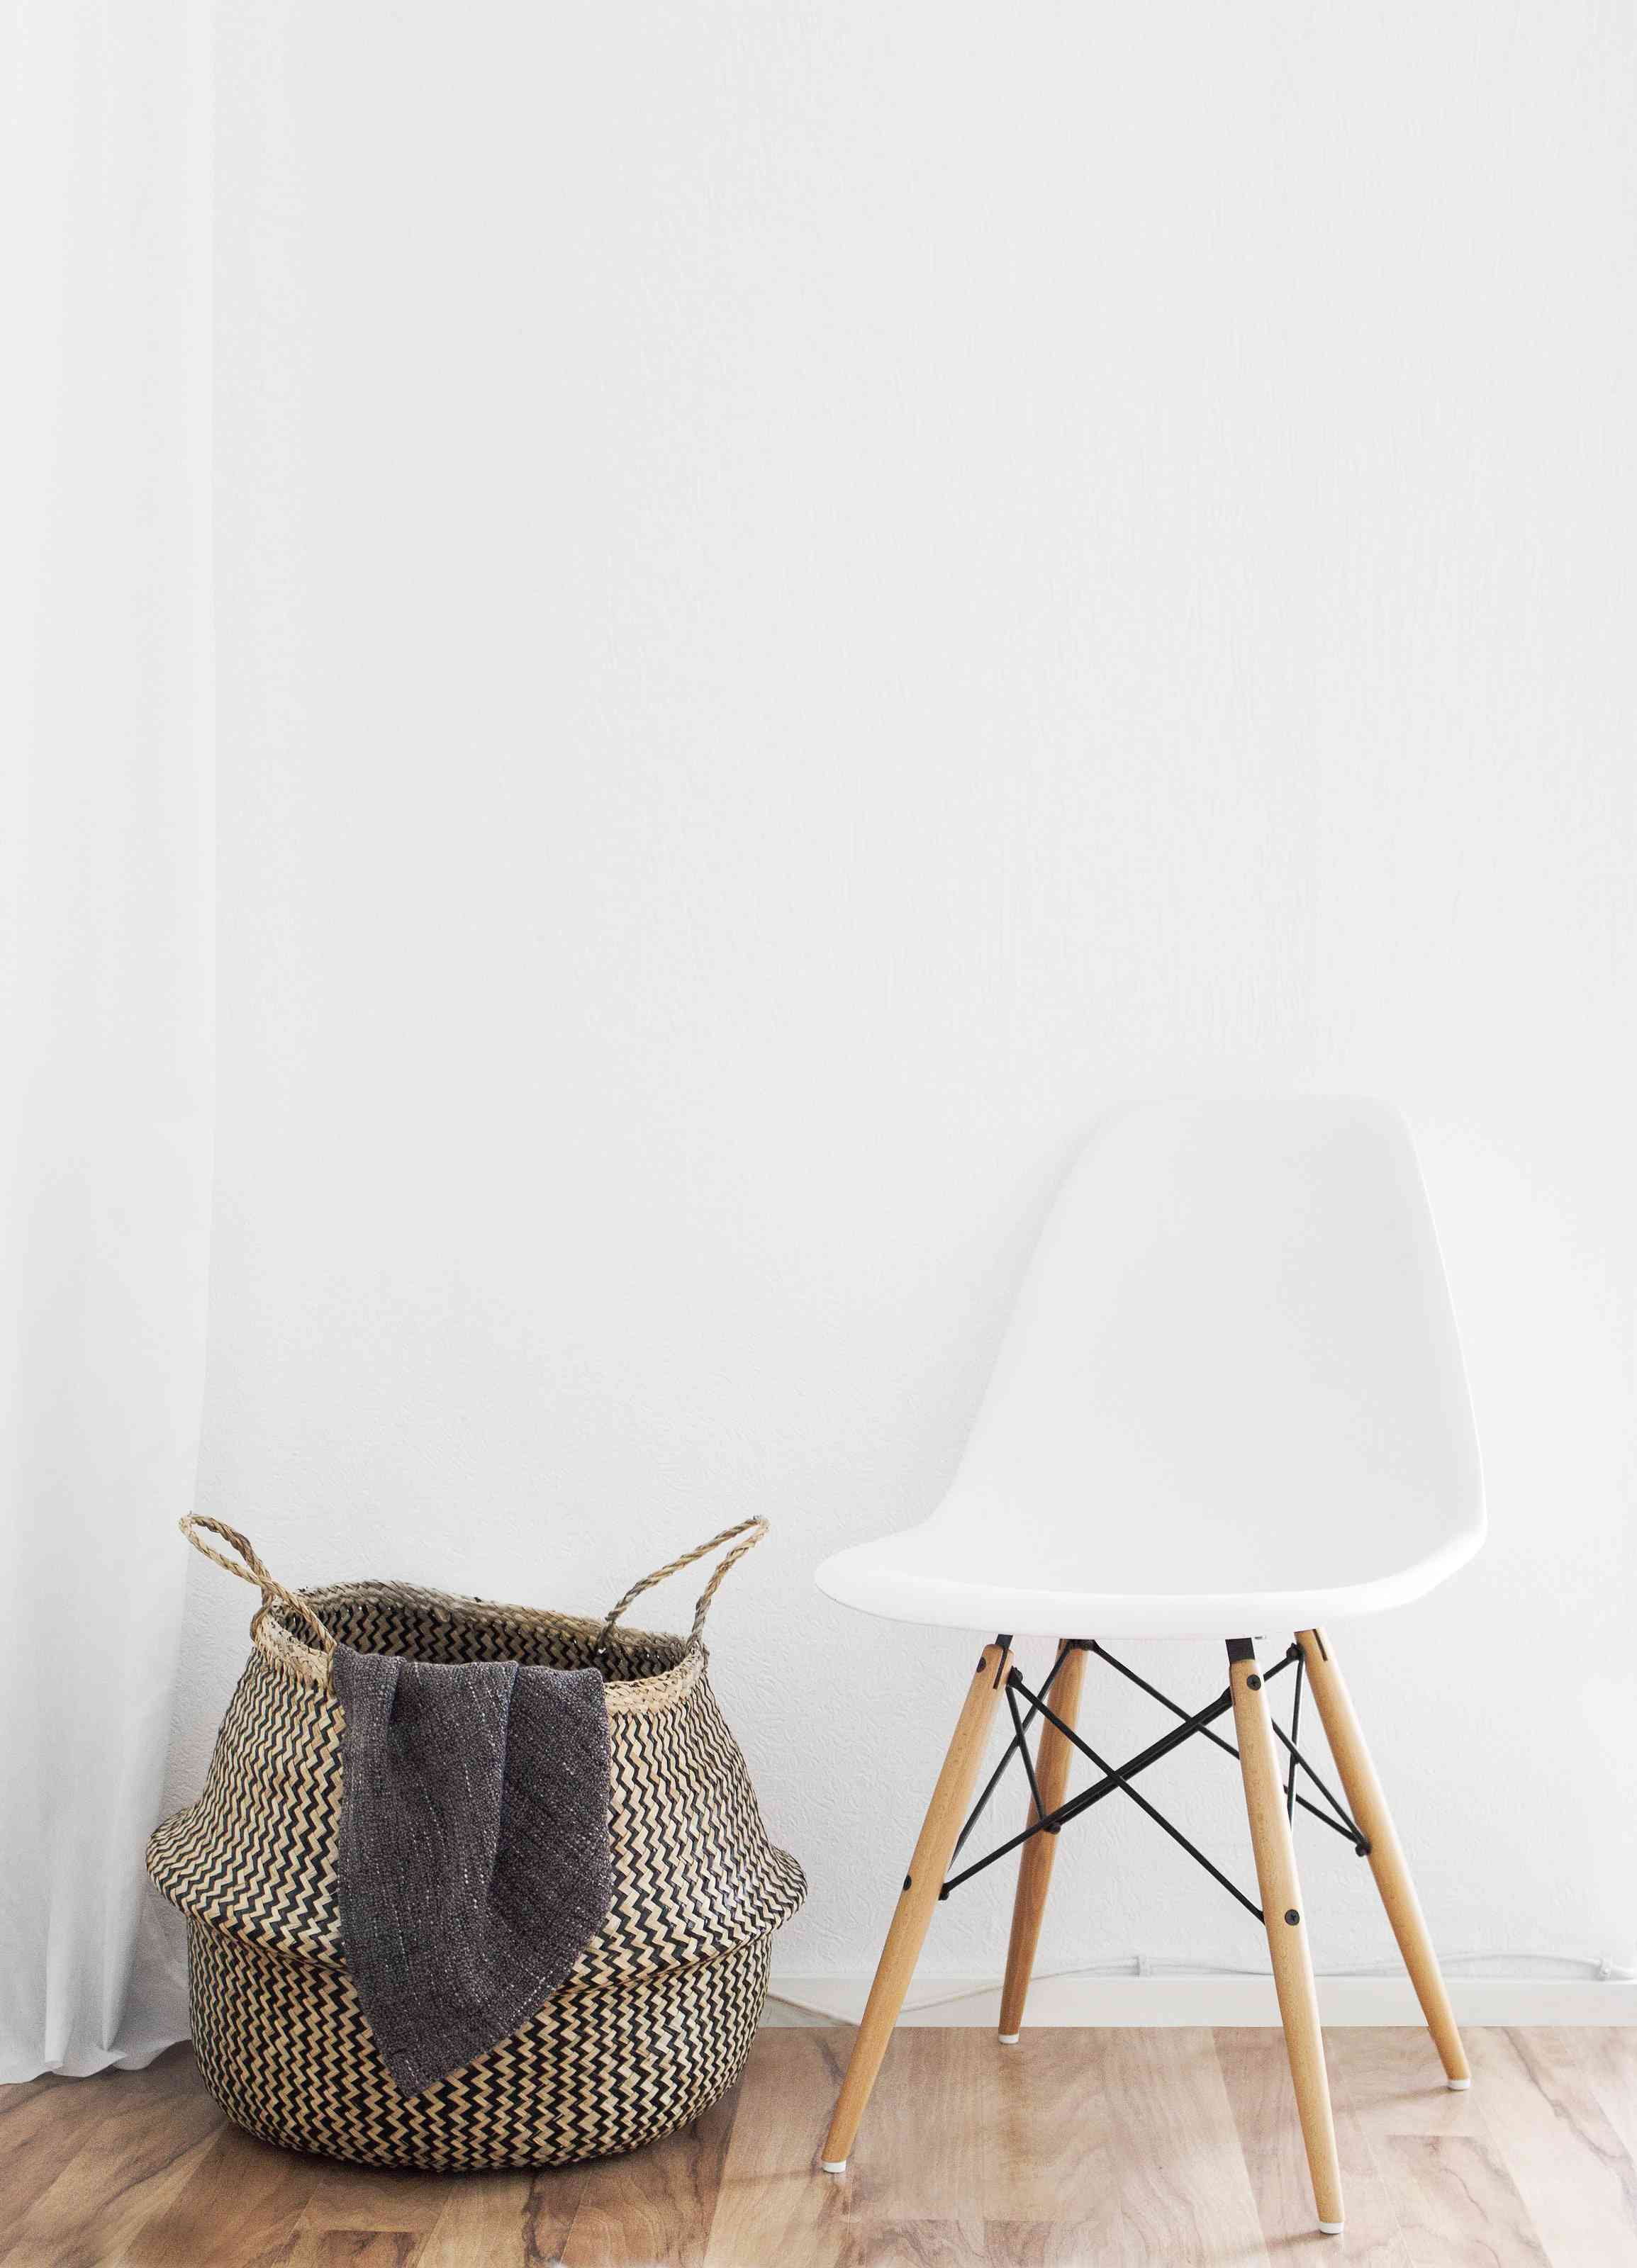 Woven basket next to white chair in entryway